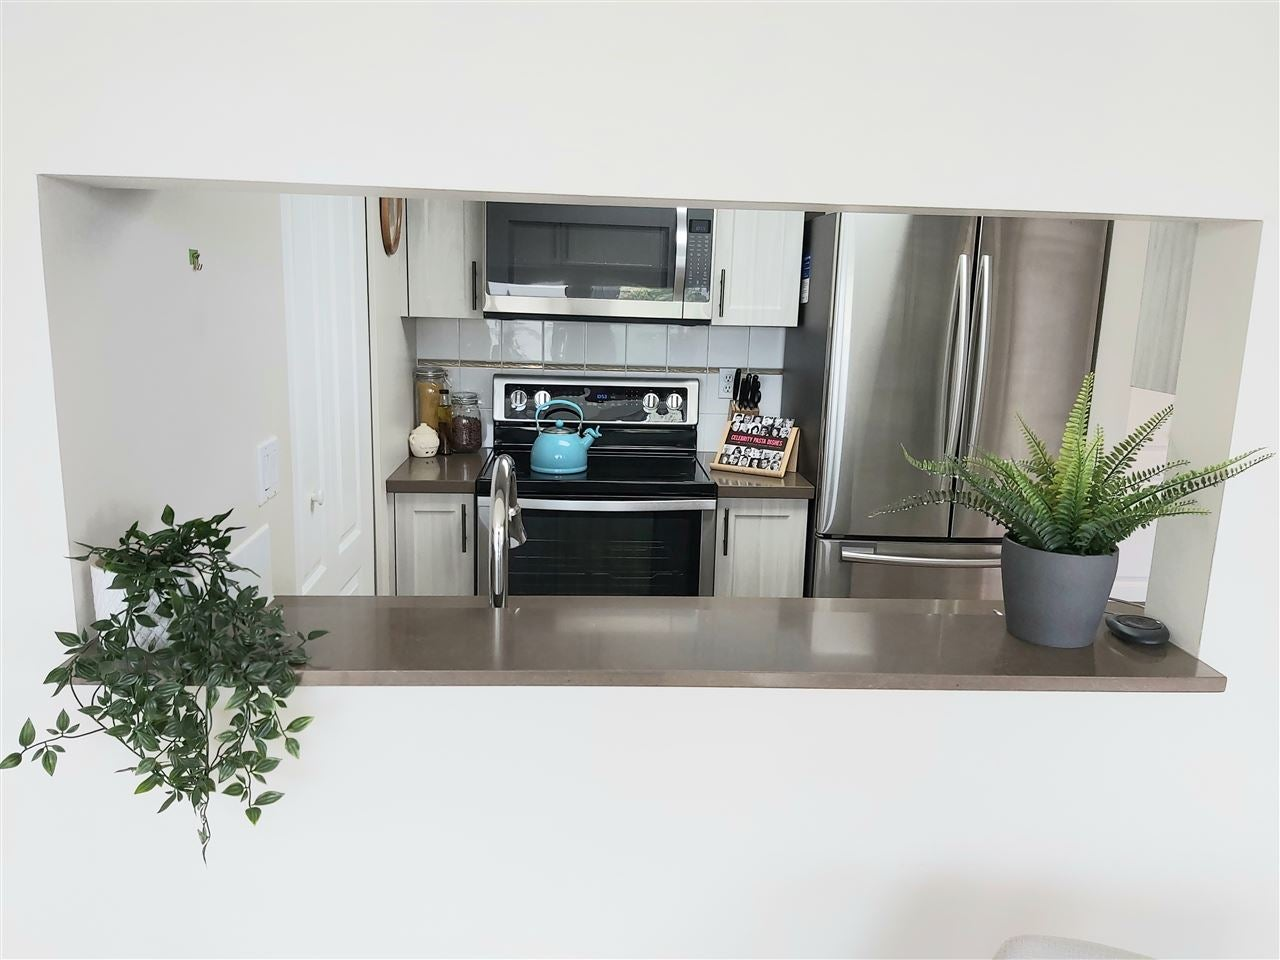 502 567 LONSDALE AVENUE - Lower Lonsdale Apartment/Condo for sale, 1 Bedroom (R2518852) - #6